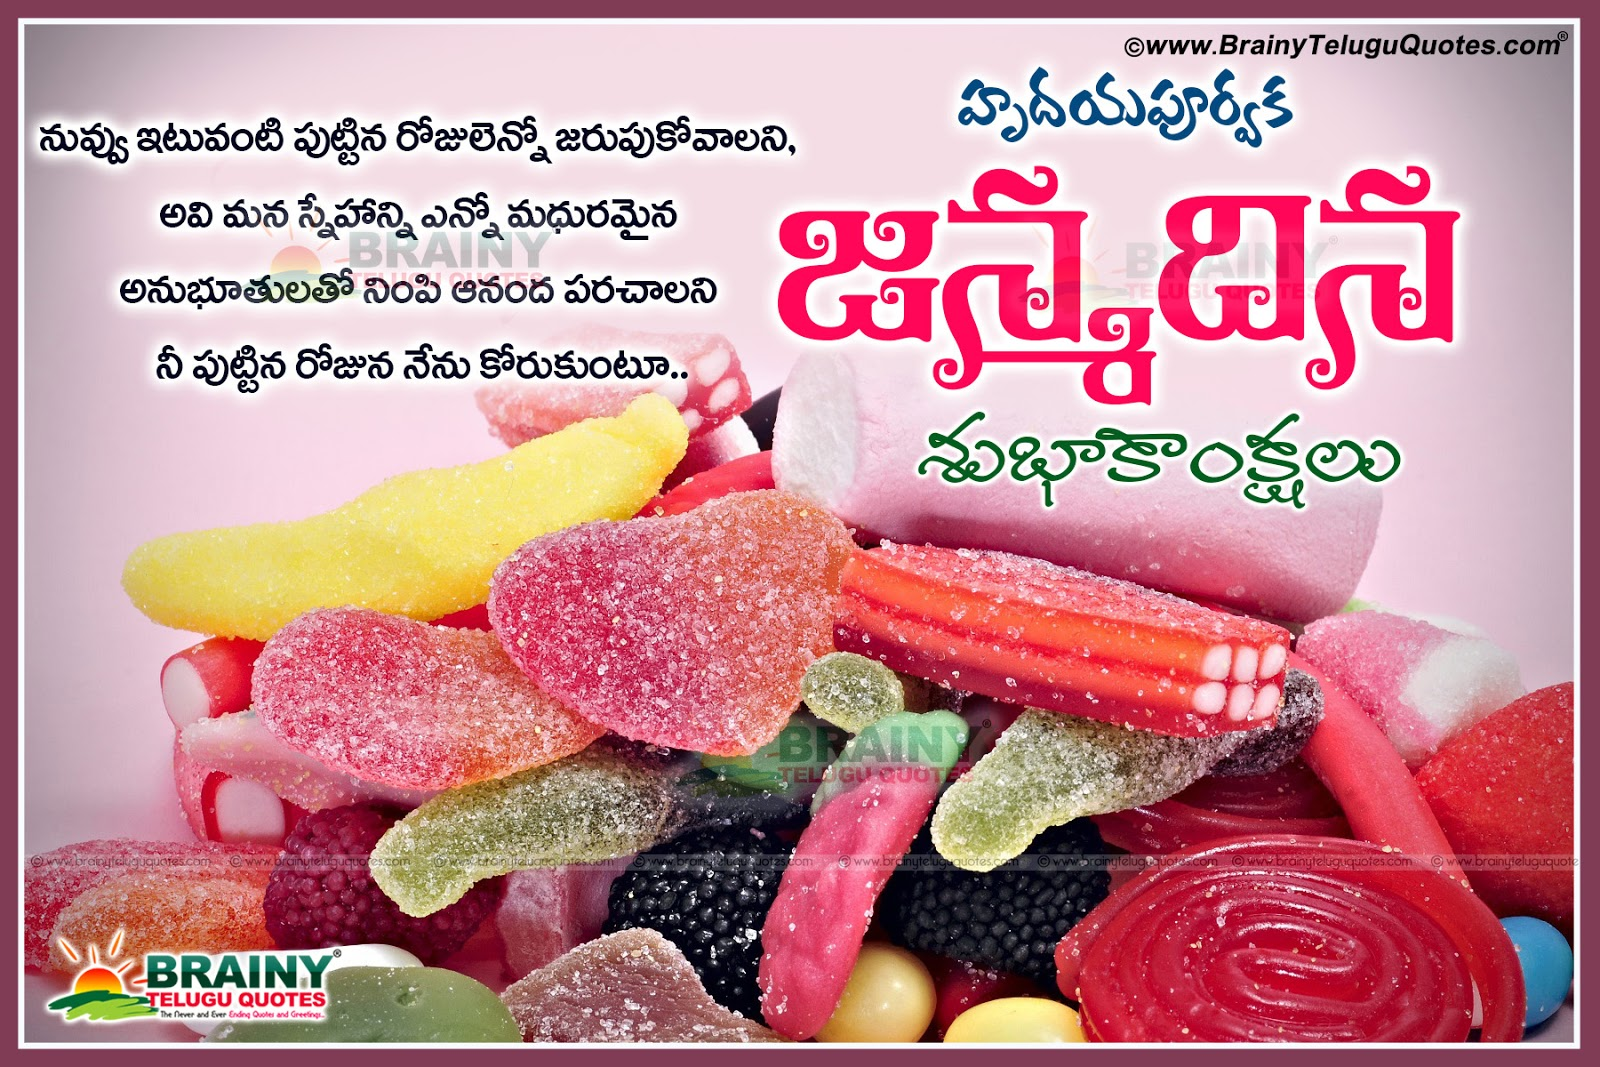 Happy birthday greeting in telugu with best wishes telugu nice birthday photo commentsfamous telugu birthday wishes in telugu languageawesome telugu kristyandbryce Images